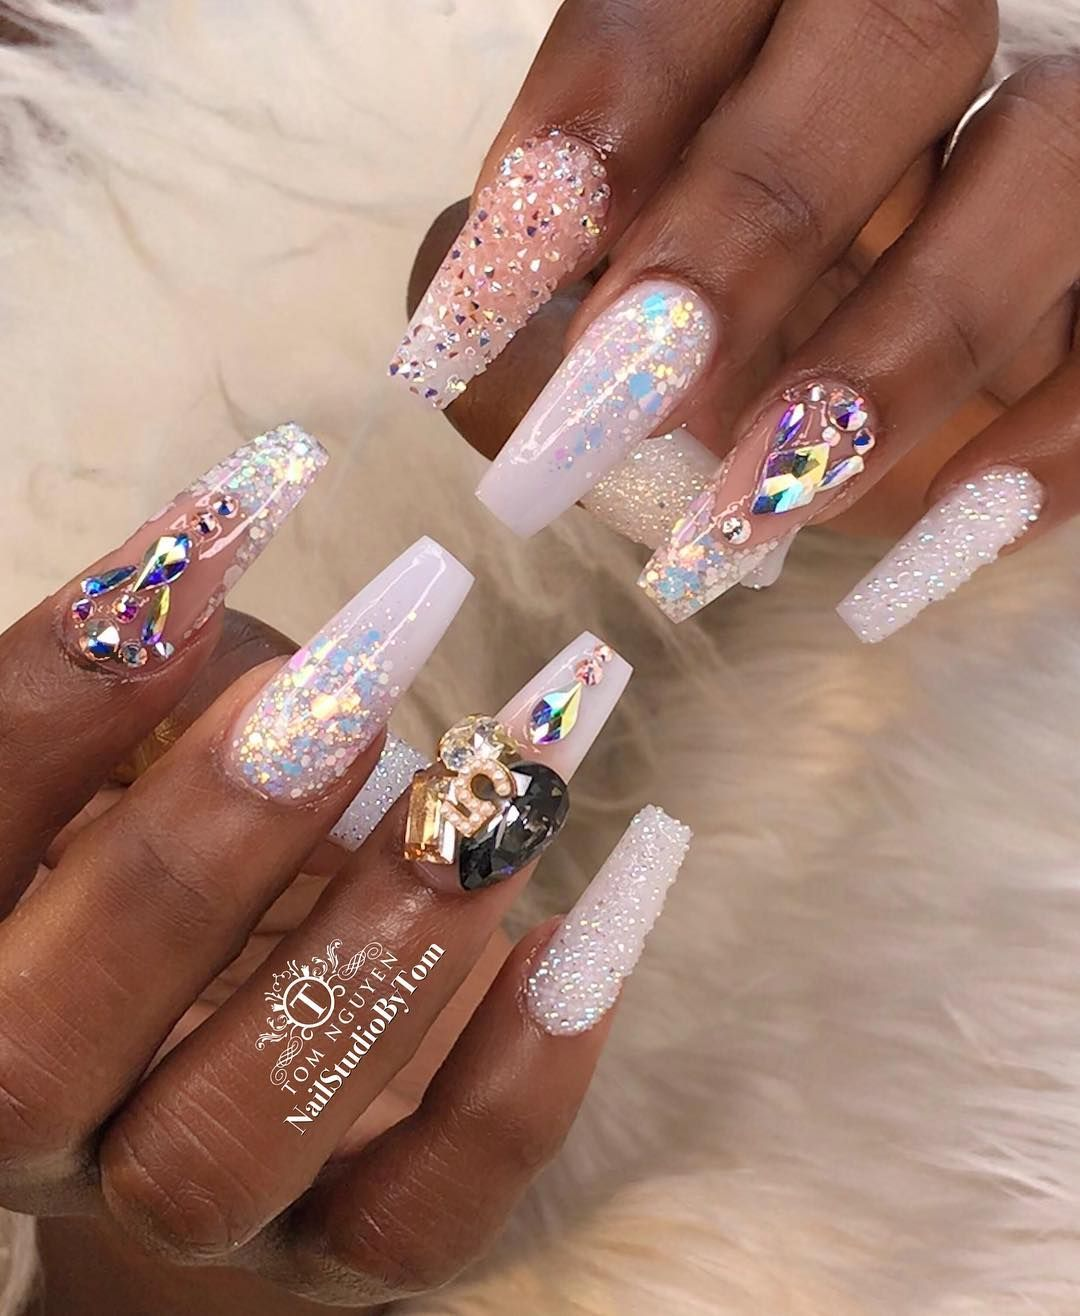 Pin By India Wylie On Nails In 2019 Nail Art Nail Designs Nails